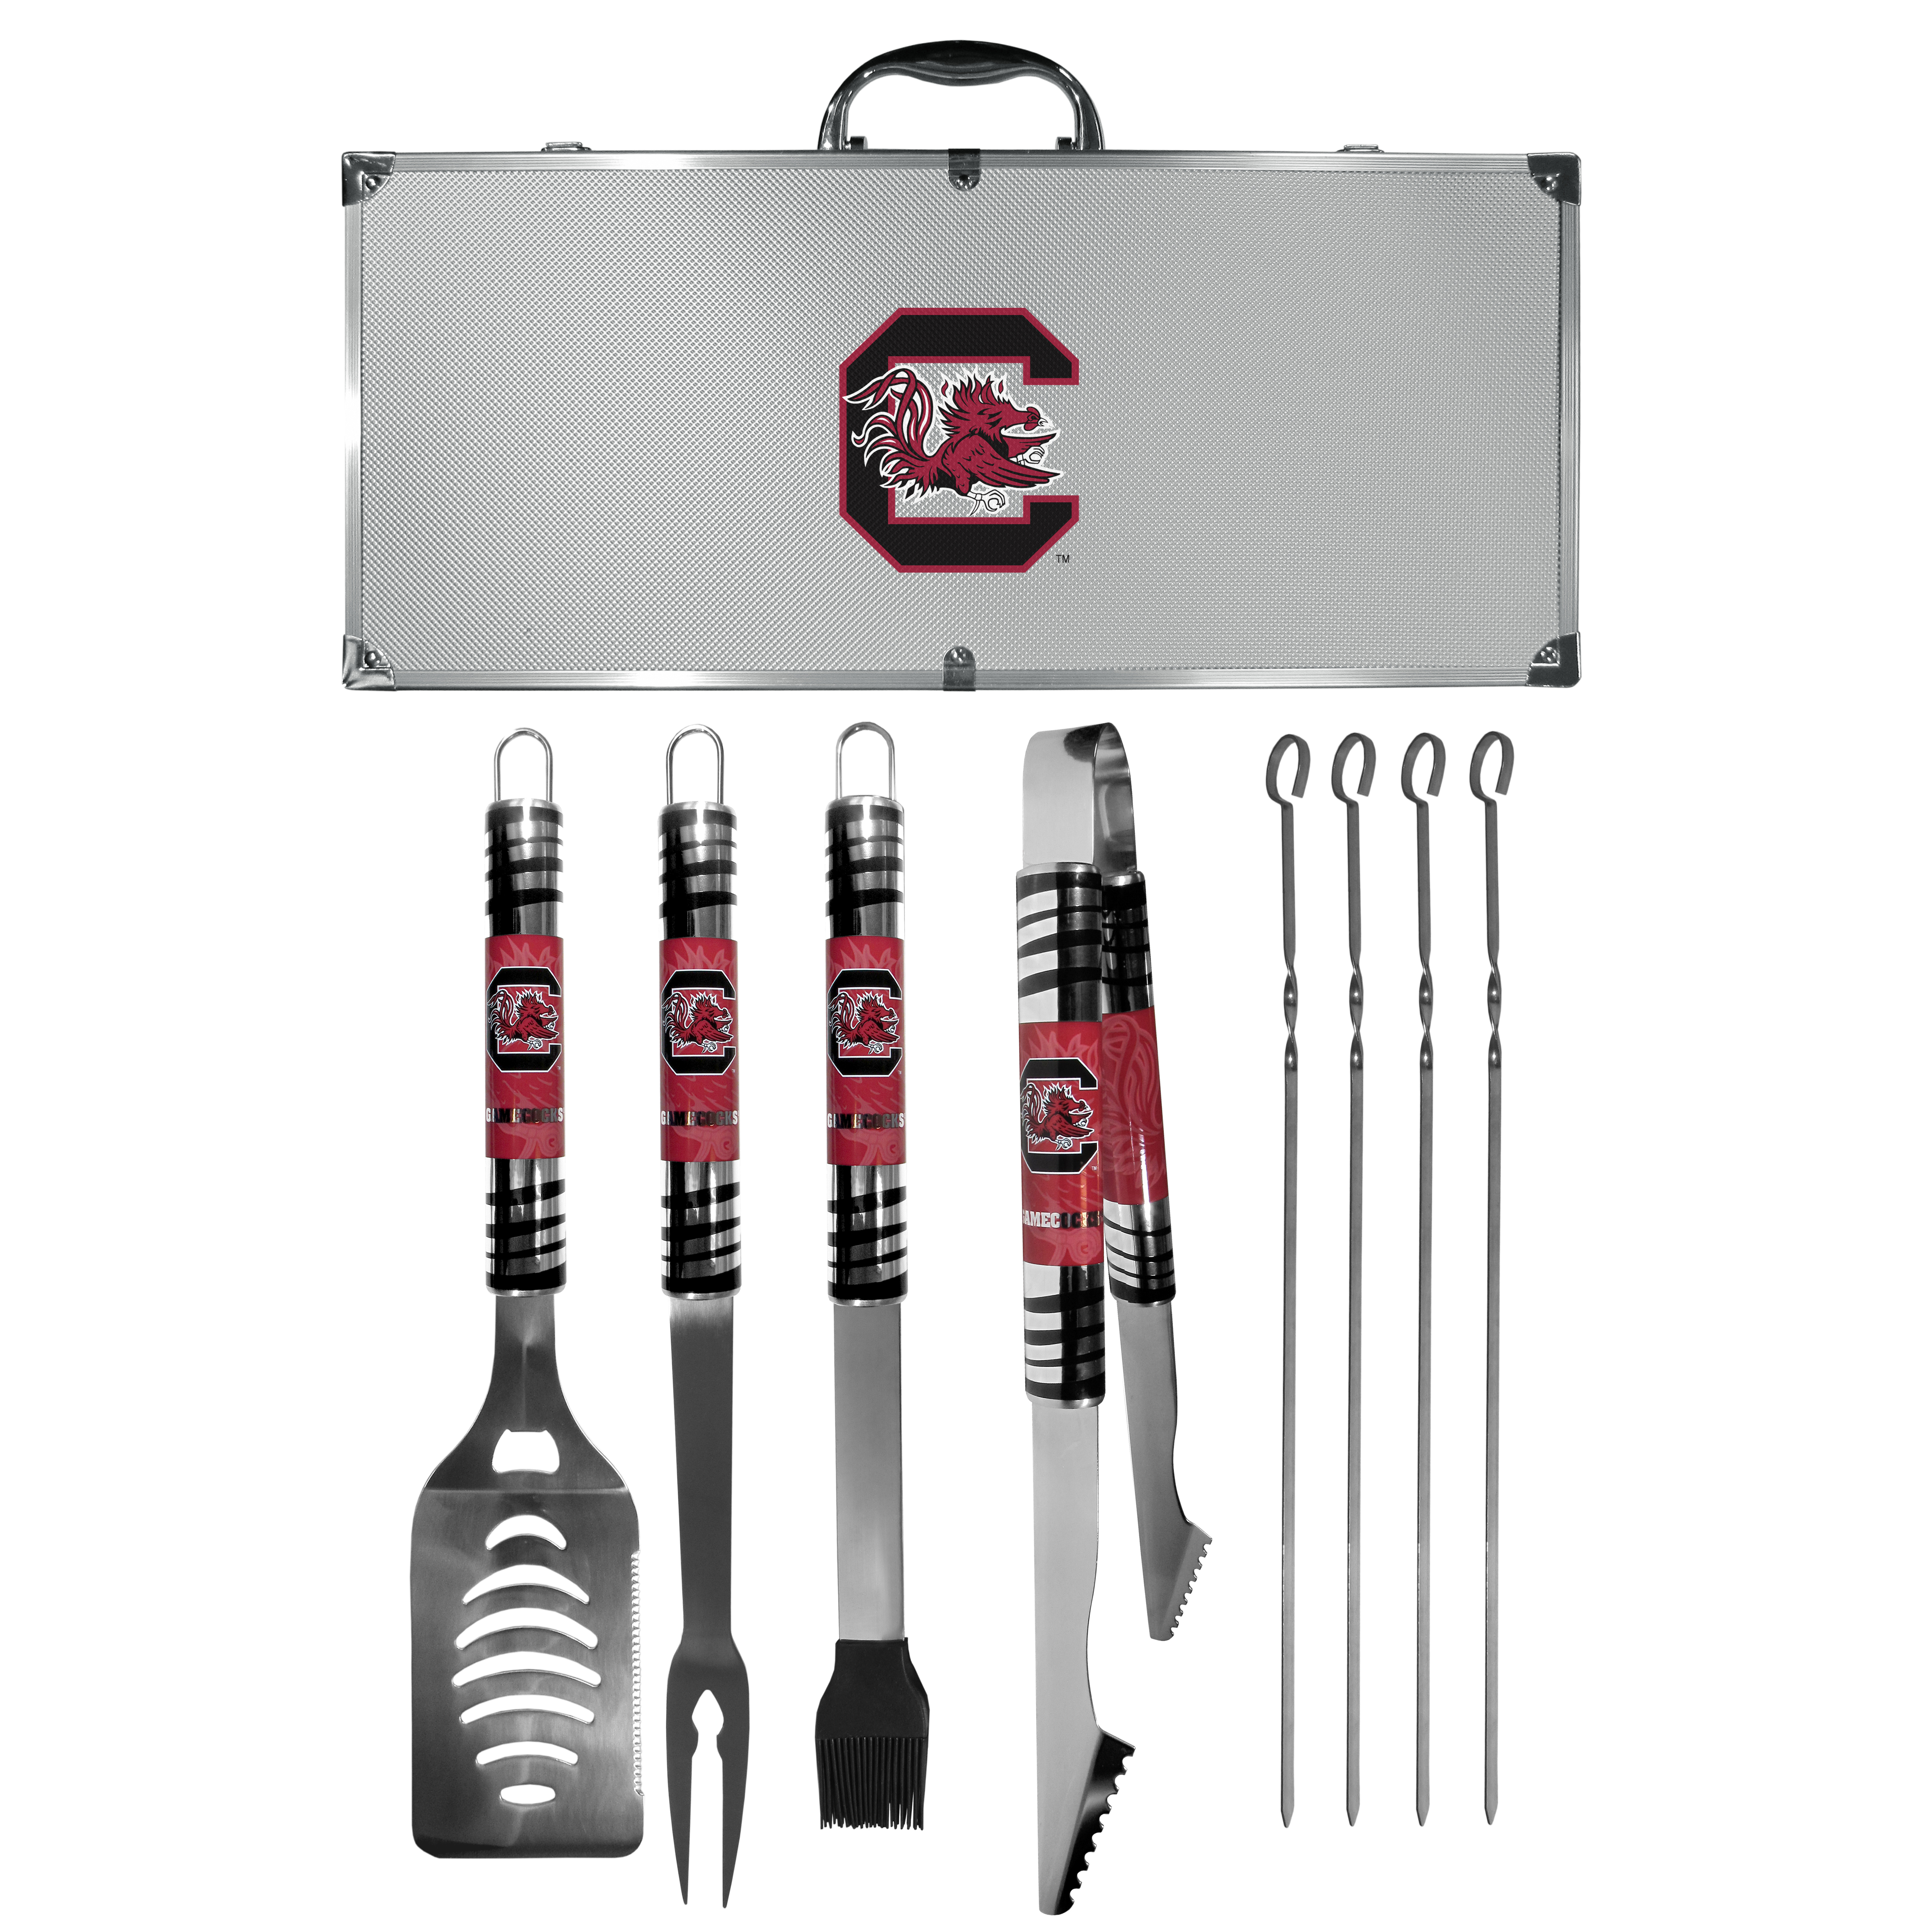 S. Carolina Gamecocks 8 pc Tailgater BBQ Set - This is the ultimate S. Carolina Gamecocks tailgate accessory! The high quality, 420 grade stainless steel tools are durable and well-made enough to make even the pickiest grill master smile. This complete grill accessory kit includes; 4 skewers, spatula with bottle opener and serrated knife edge, basting brush, tongs and a fork. The 18 inch metal carrying case is perfect for great outdoor use making grilling an ease while camping, tailgating or while having a game day party on your patio. The tools are 17 inches long and feature vivid team graphics. The metal case features a large team emblem with exceptional detail. This high-end men's gift is sure to be a hit as a present on Father's Day or Christmas.